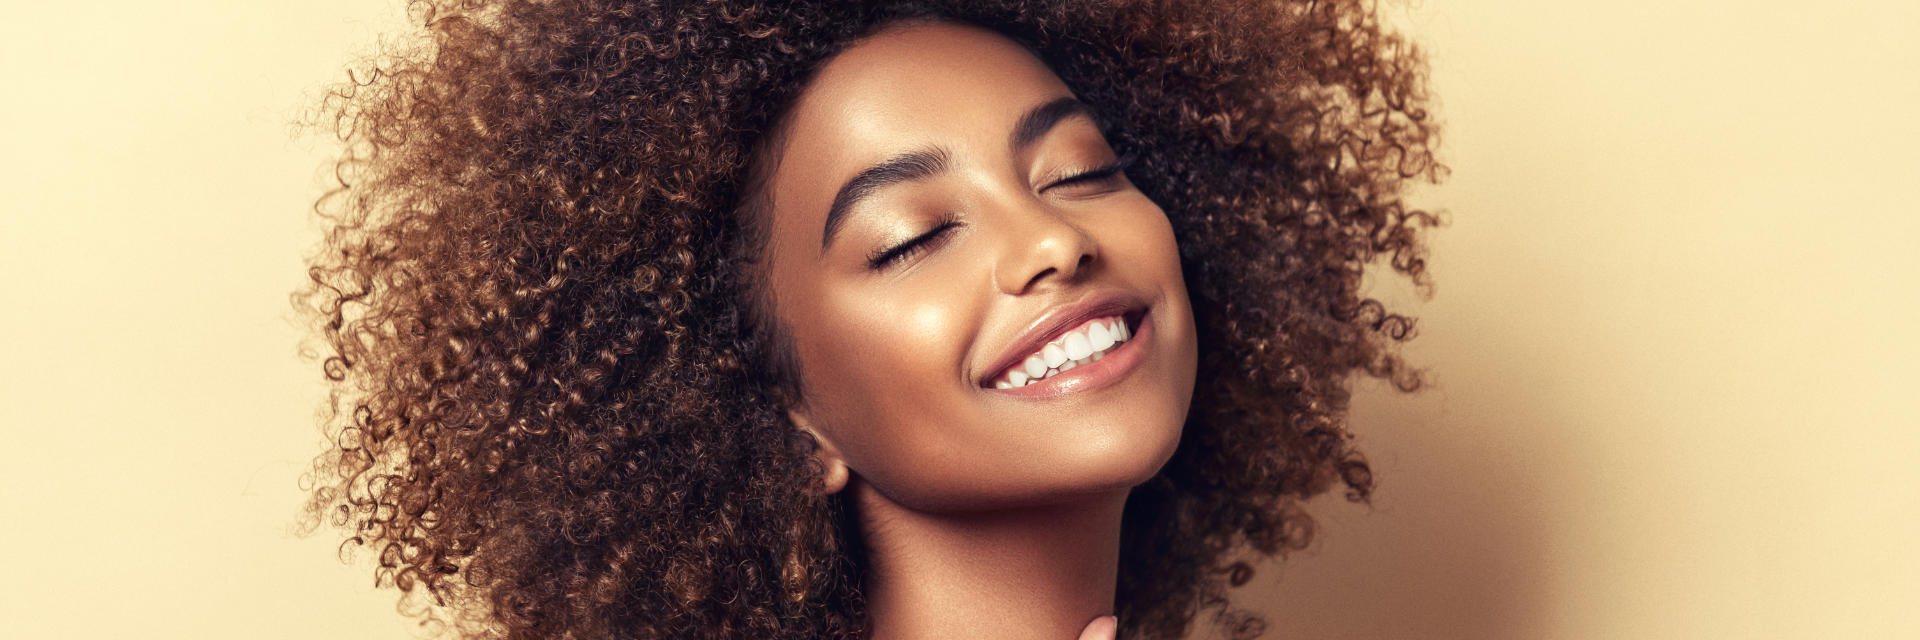 Happy young Afro-American woman showing her beautiful teeth in smile.